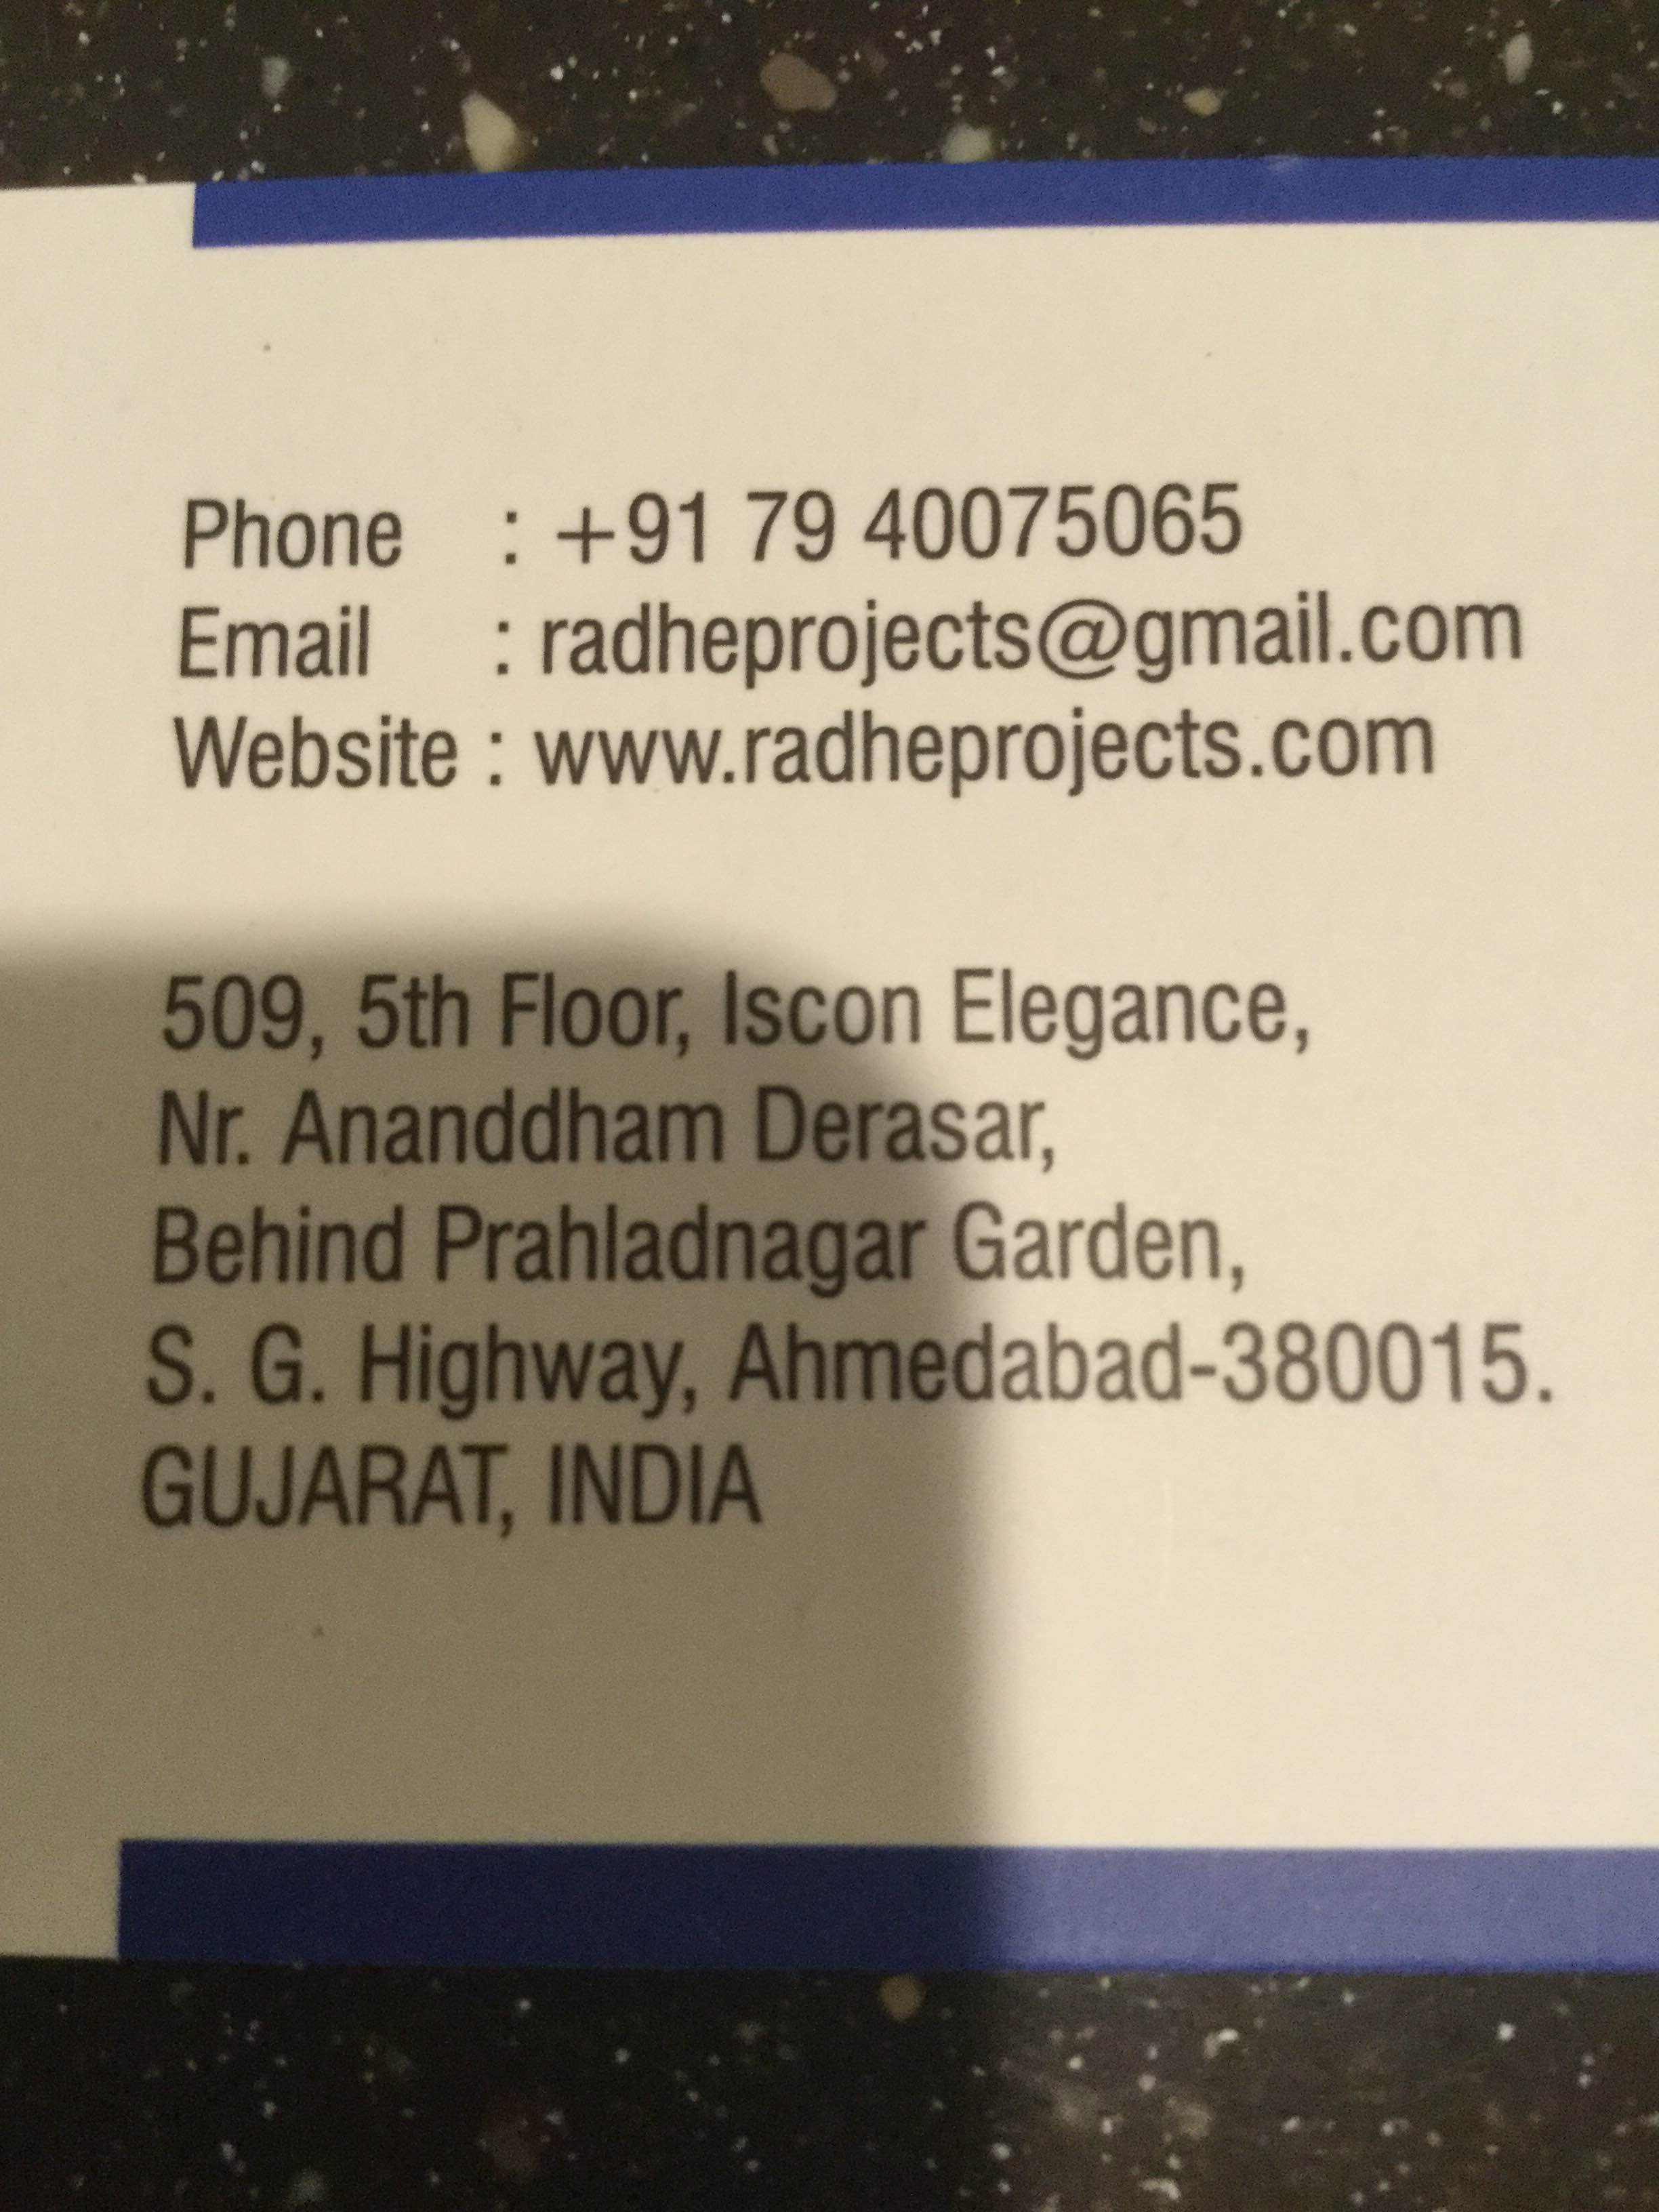 For more information kindly www.radheprojects.com